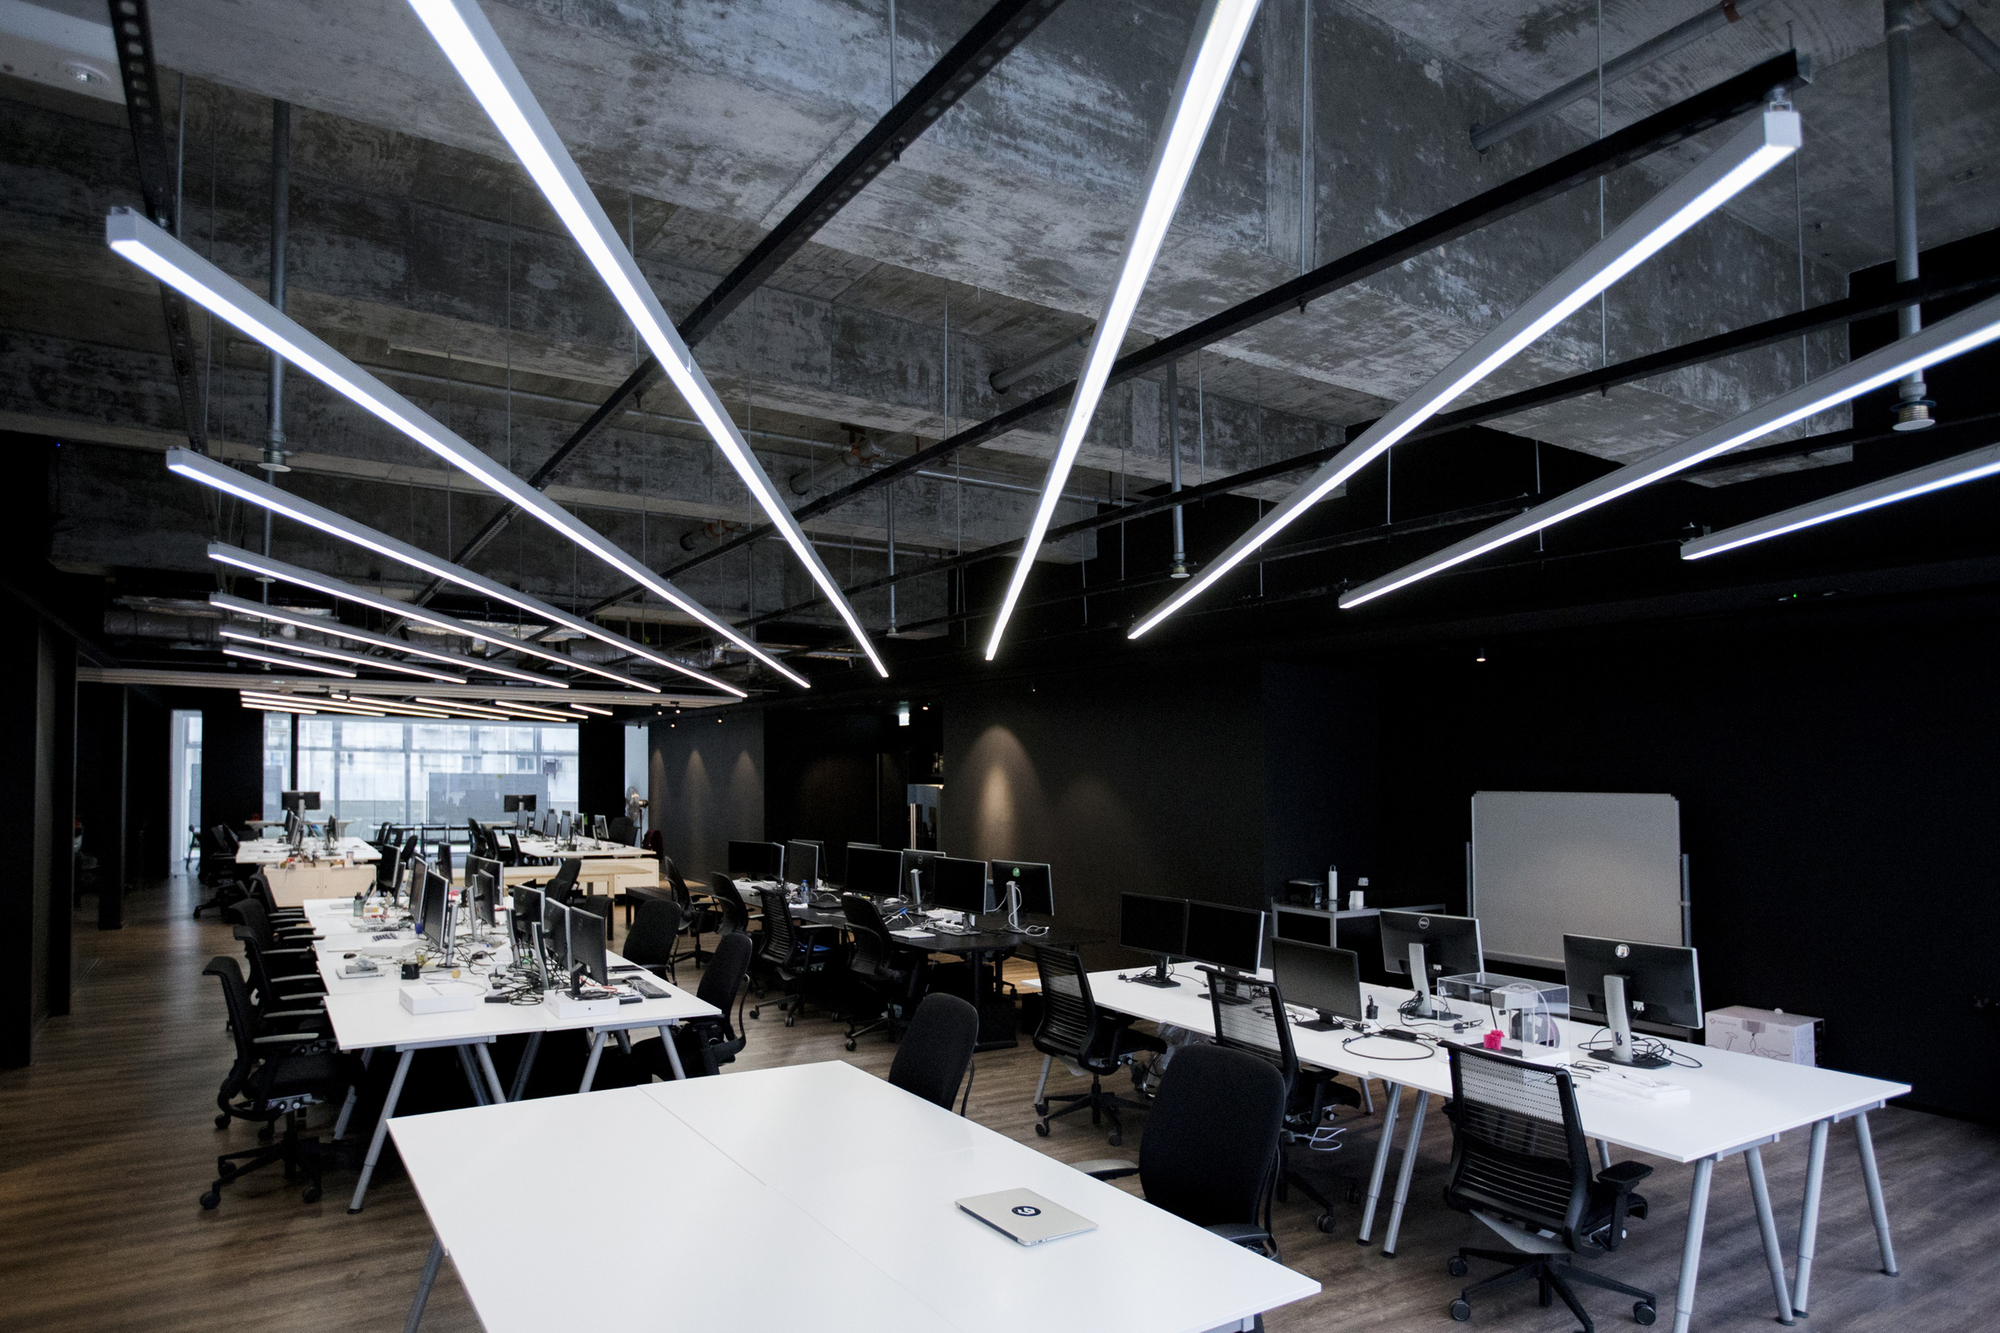 Hk open office space Coworking Offices Courtesy Of Laab Architects Beam Plus Online Exhibition Hkgbc 9gag Office Laab Architects Archdaily